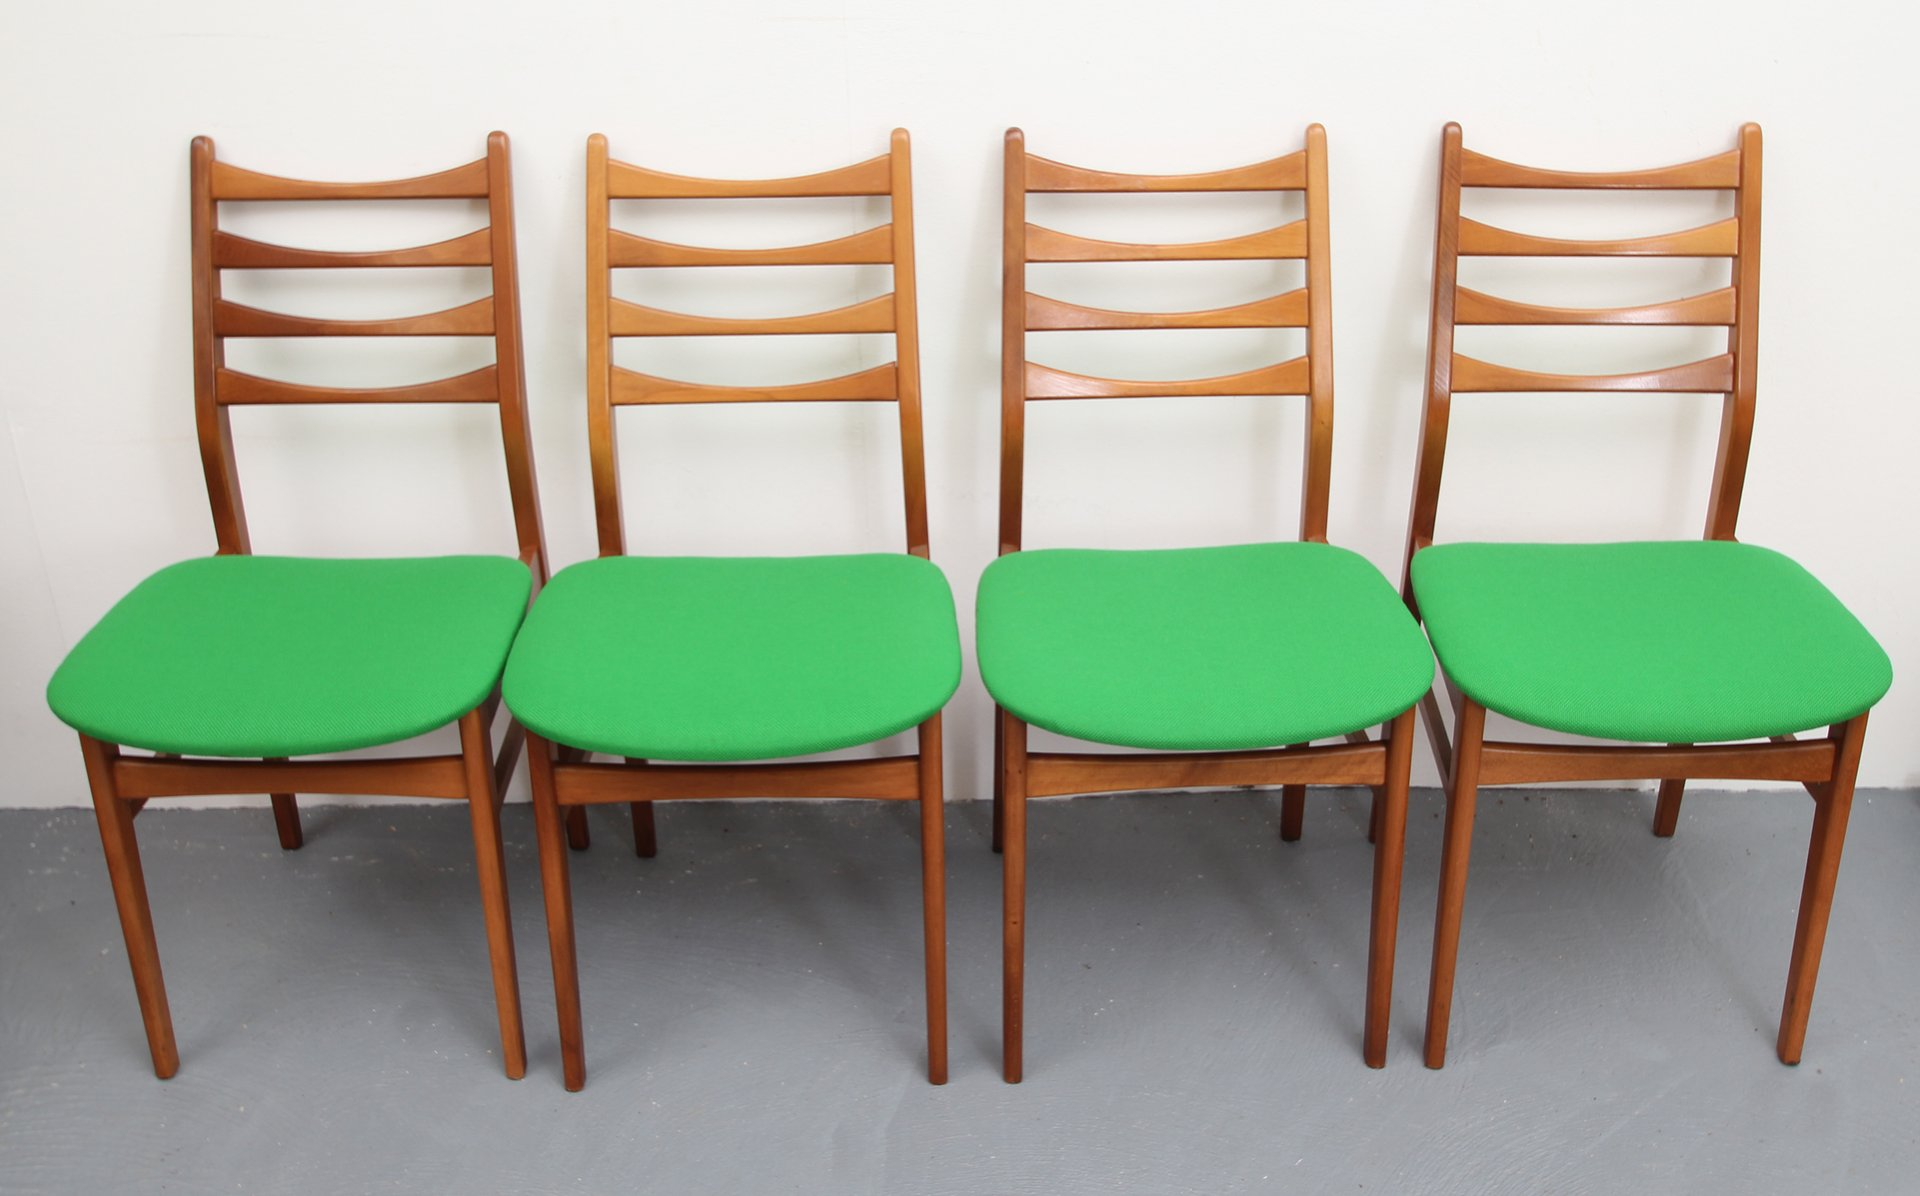 Grass green chairs 1950s set of 4 for sale at pamono for Furniture 1950